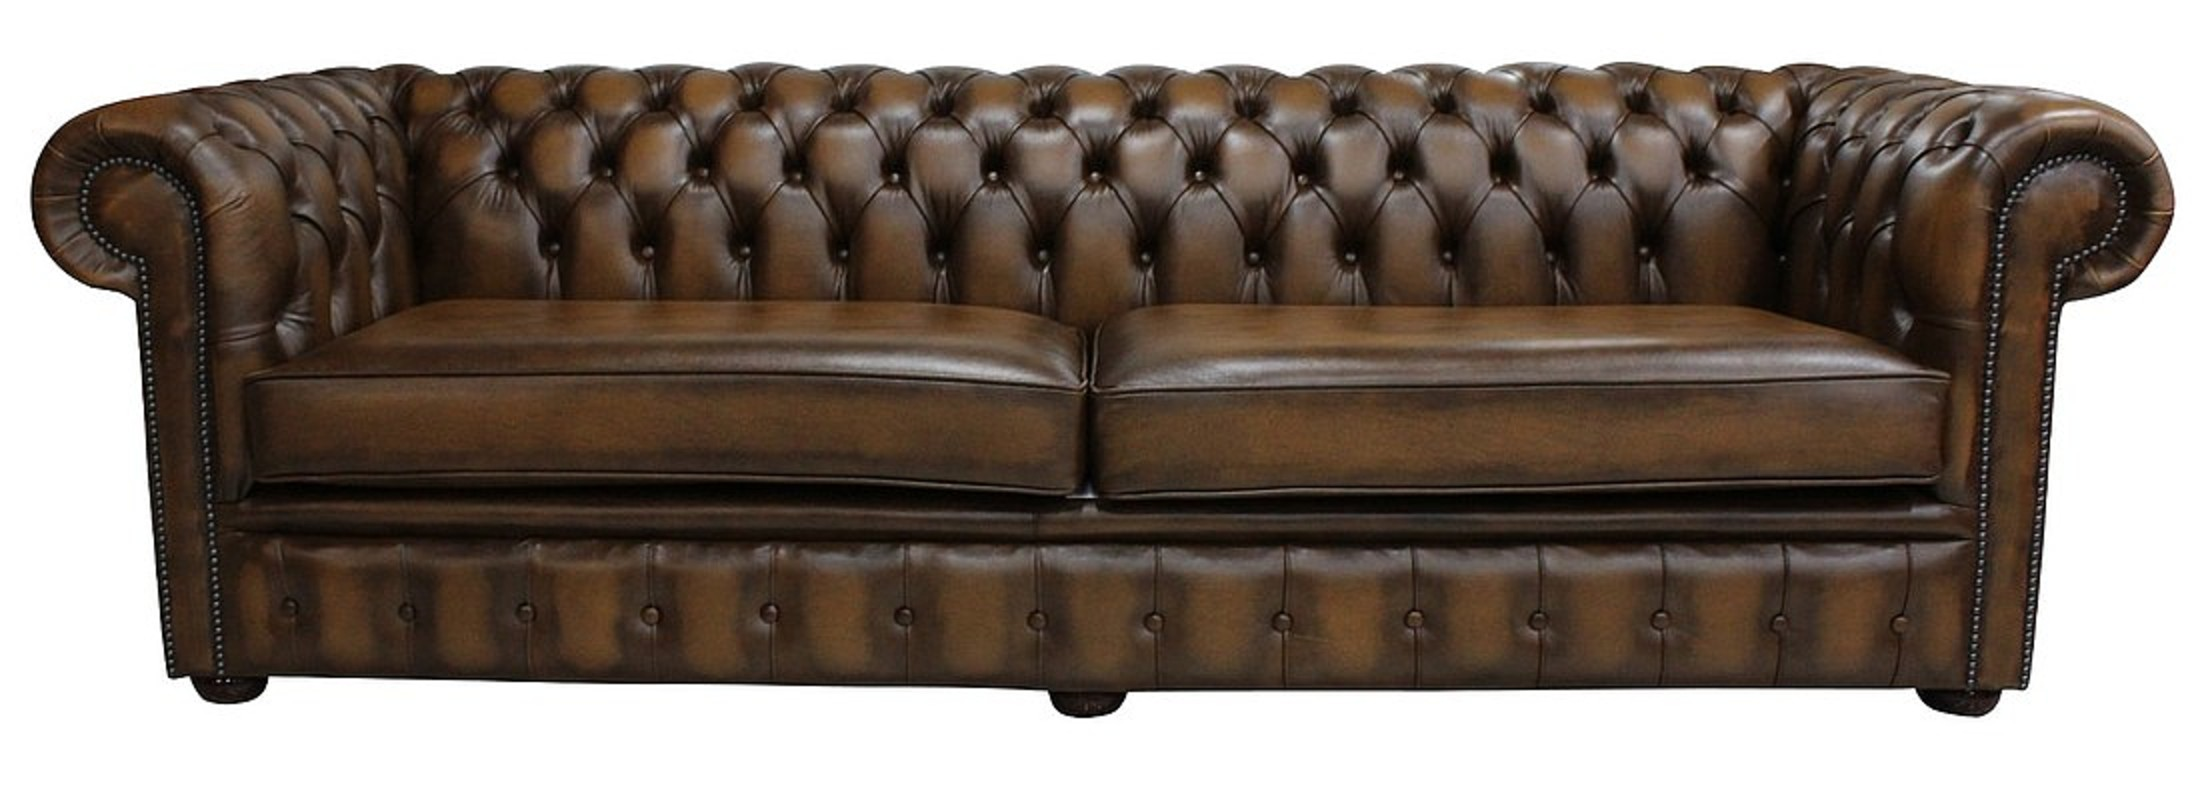 World Sofas Uk Sofa MenzilperdeNet